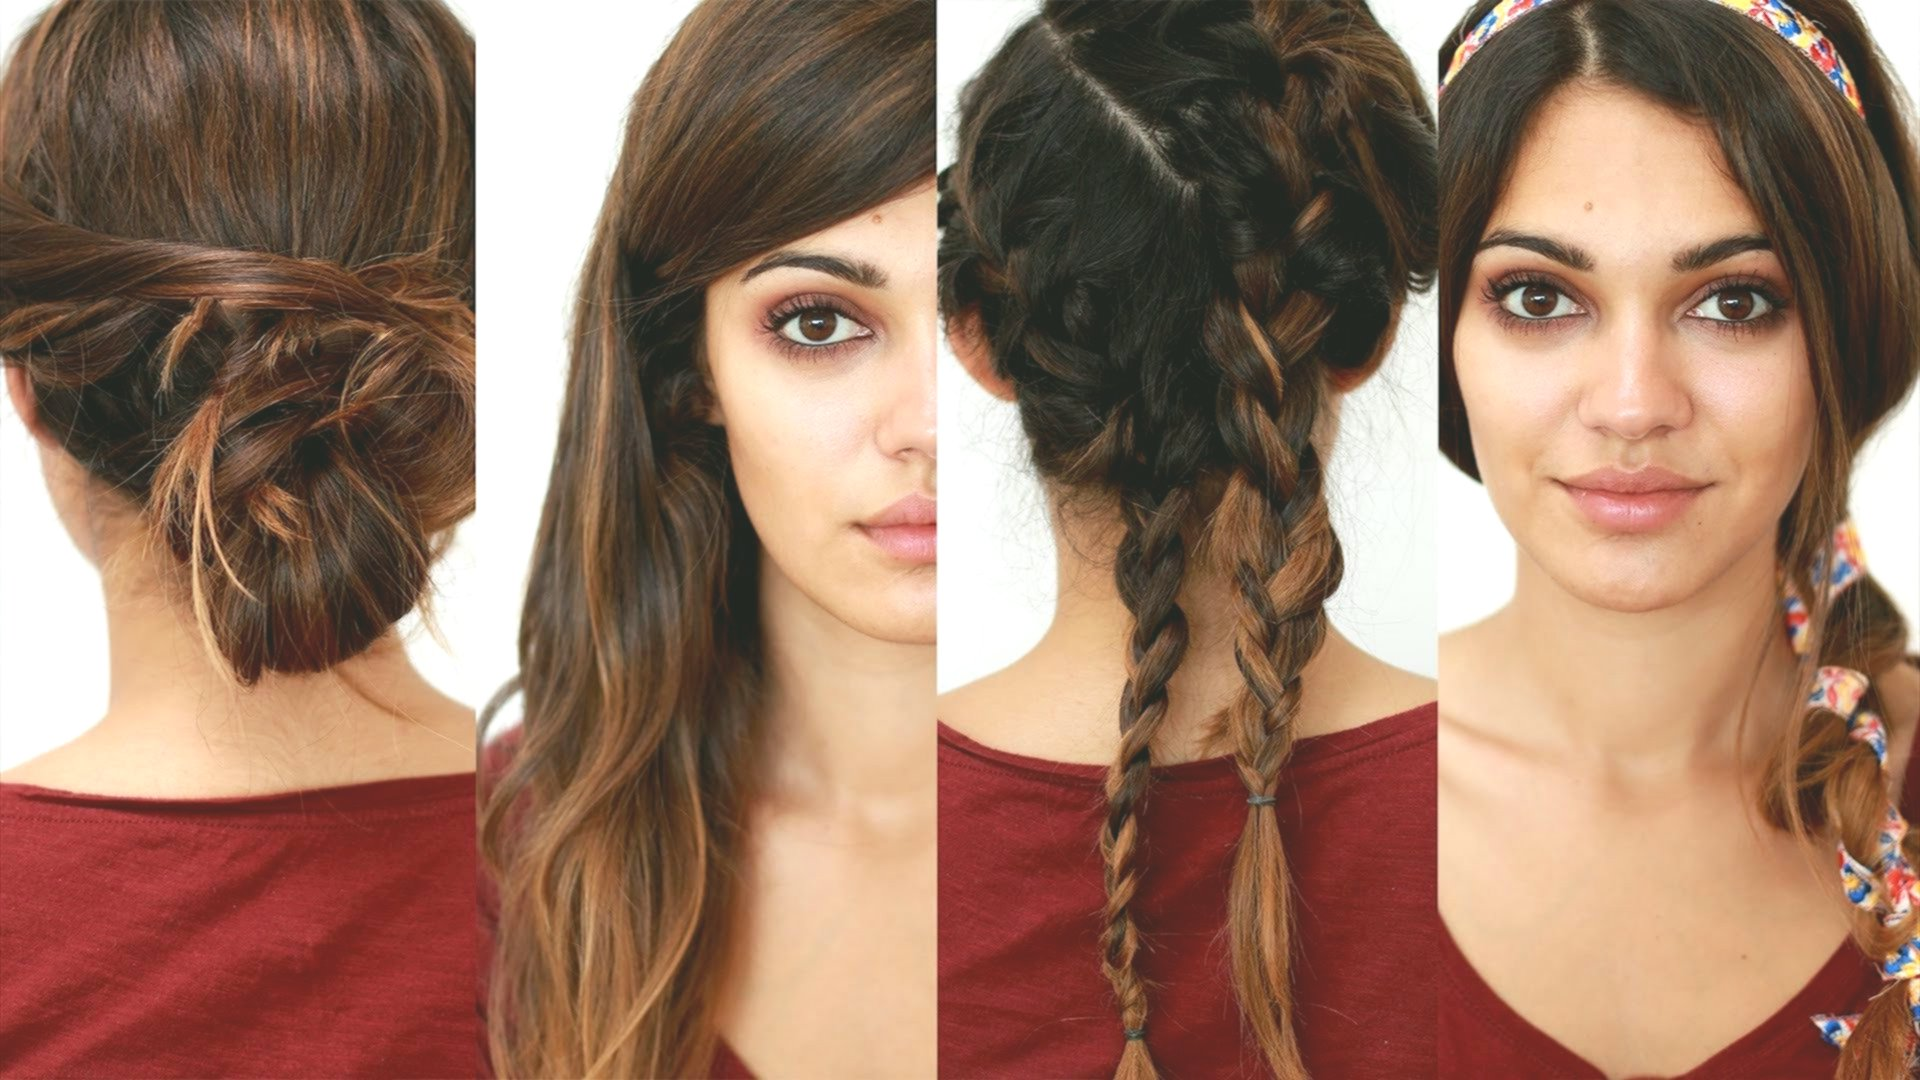 luxury curly hair hairstyles plan-Inspirational Curly Hair Hairstyles Architecture